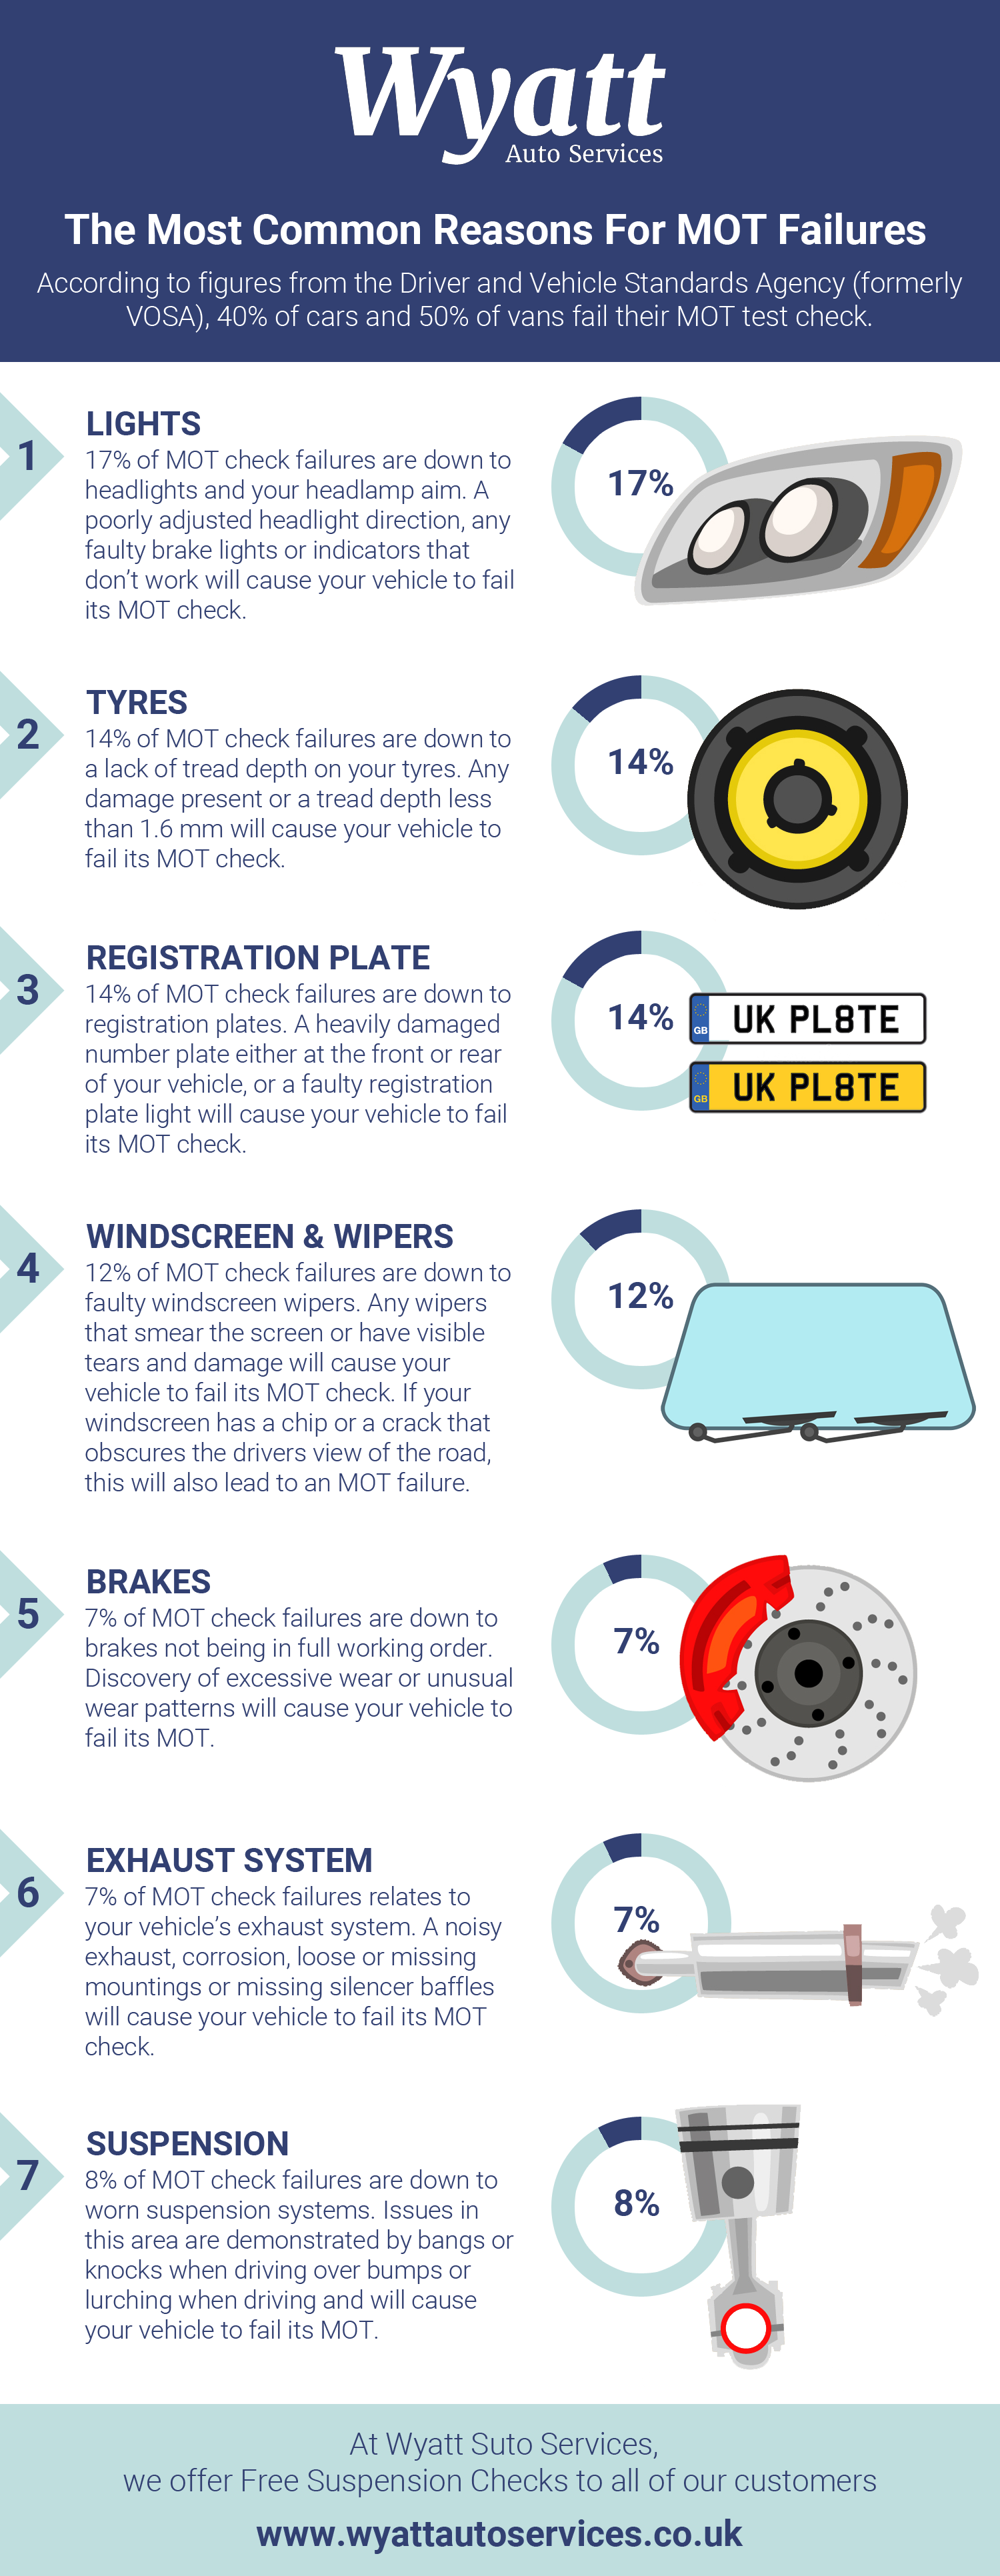 Why Do Cars Fail Their MOT